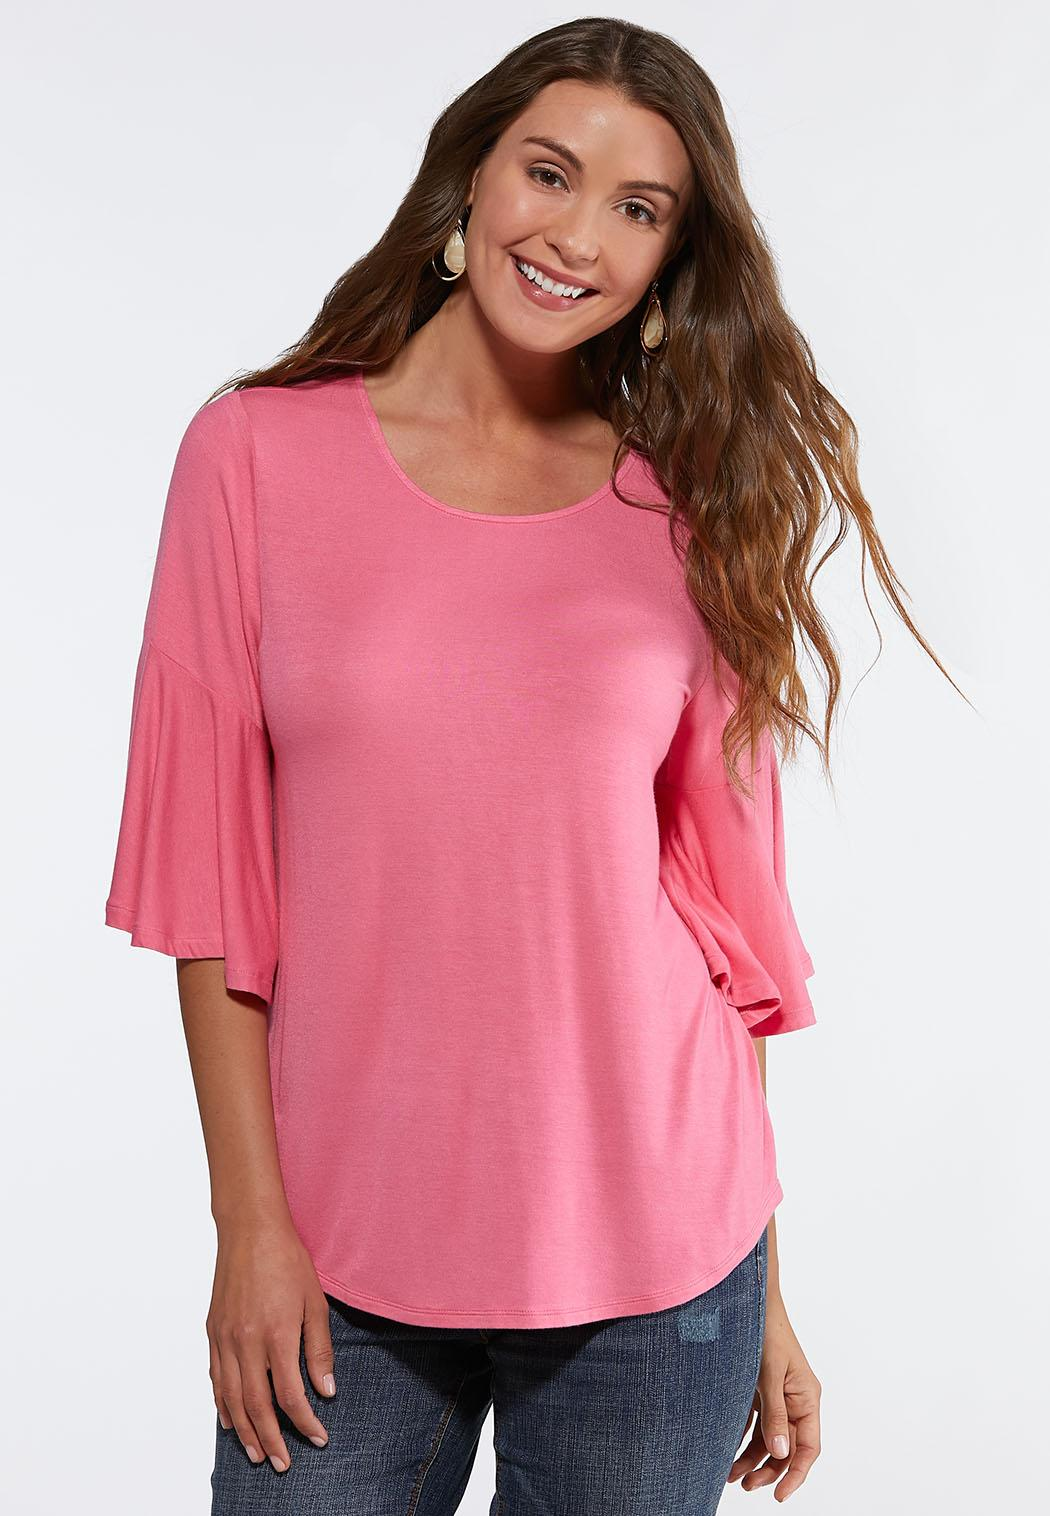 c8a58e74052 Plus Size Solid Pleated Back Top Tees   Knit Tops Cato Fashions